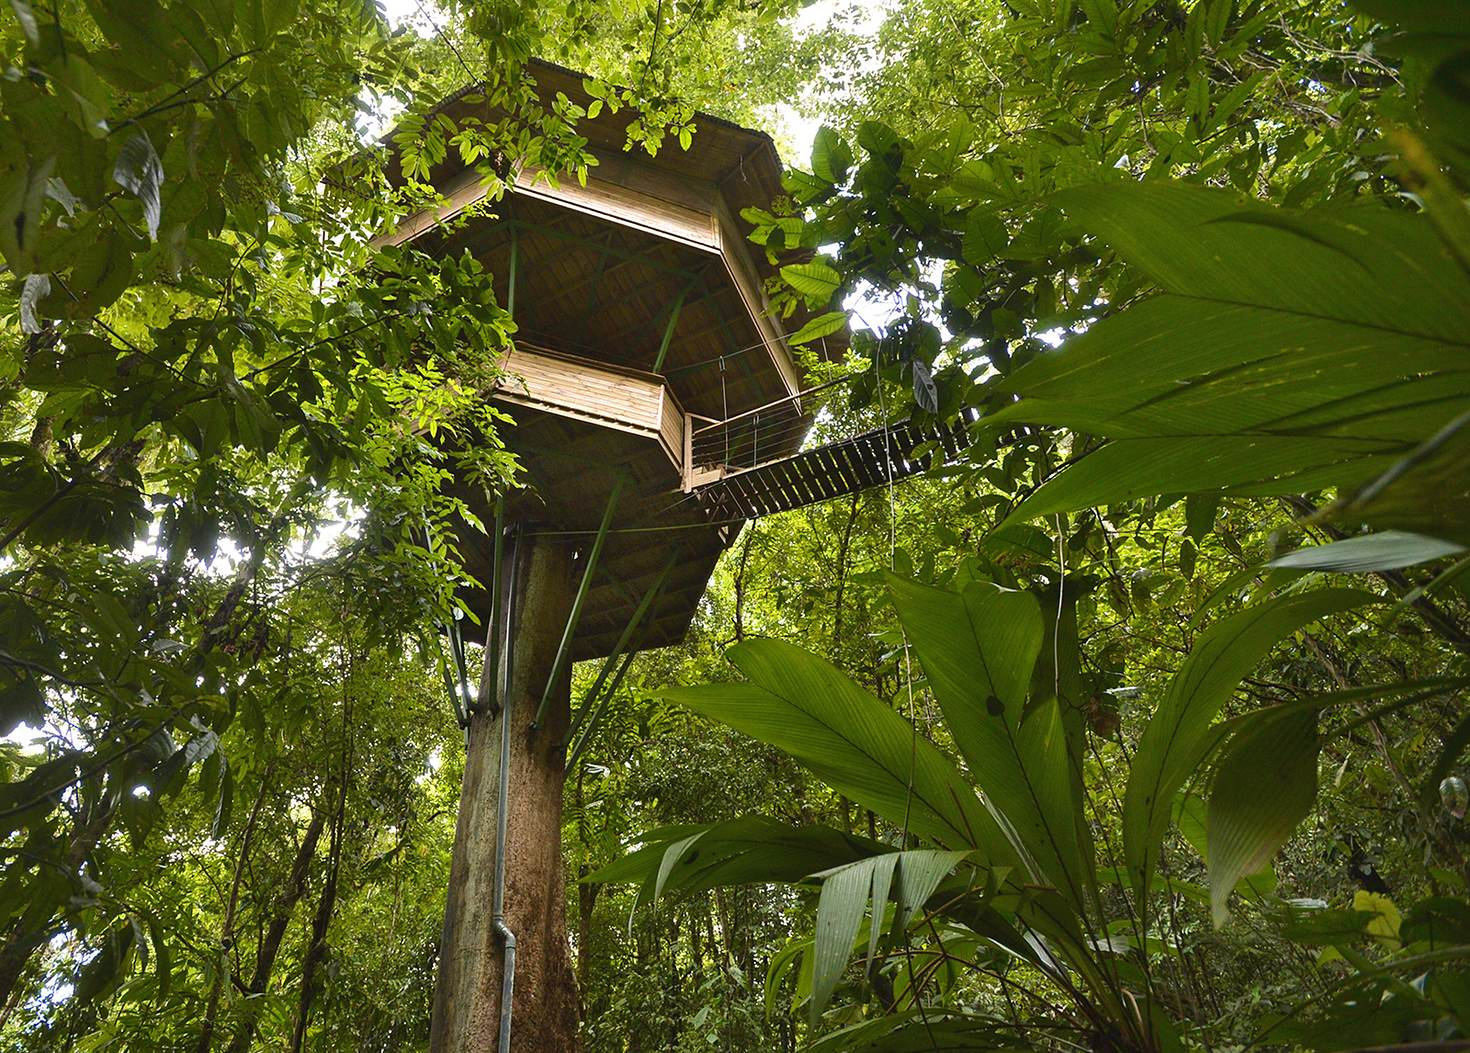 The tree house named El Castillo at Finca Bellavista © Jeremy Papasso / Finca Bellavista